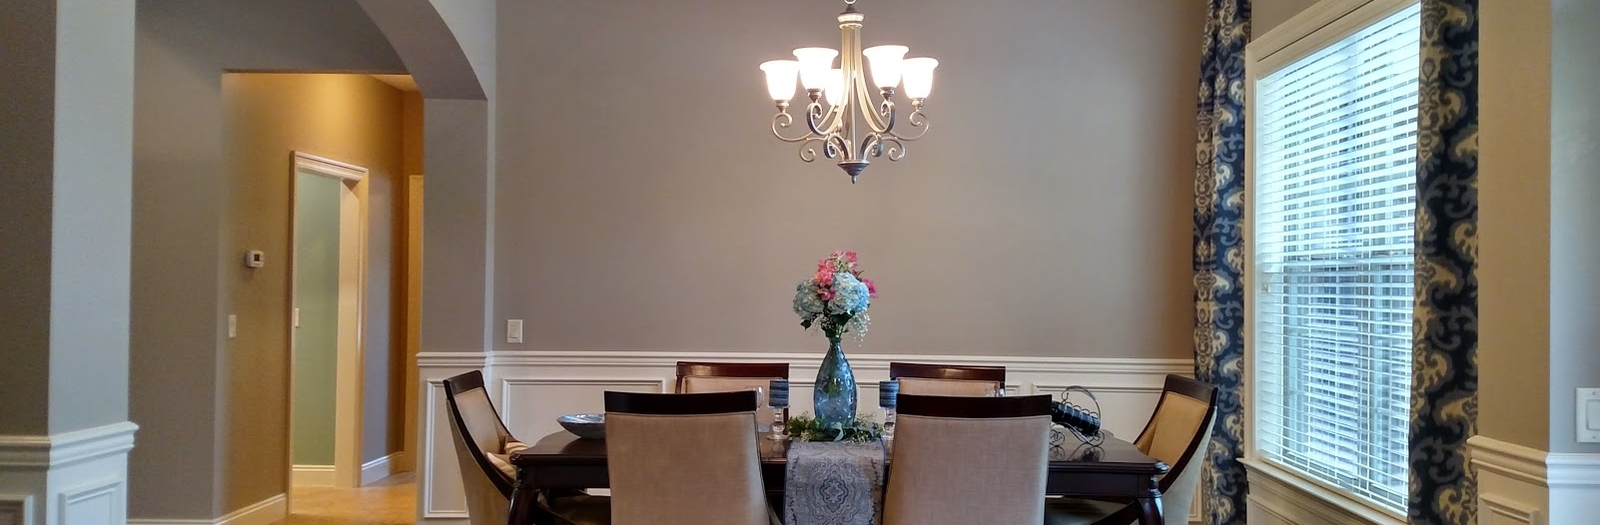 French Country Dining Room with white crown molding